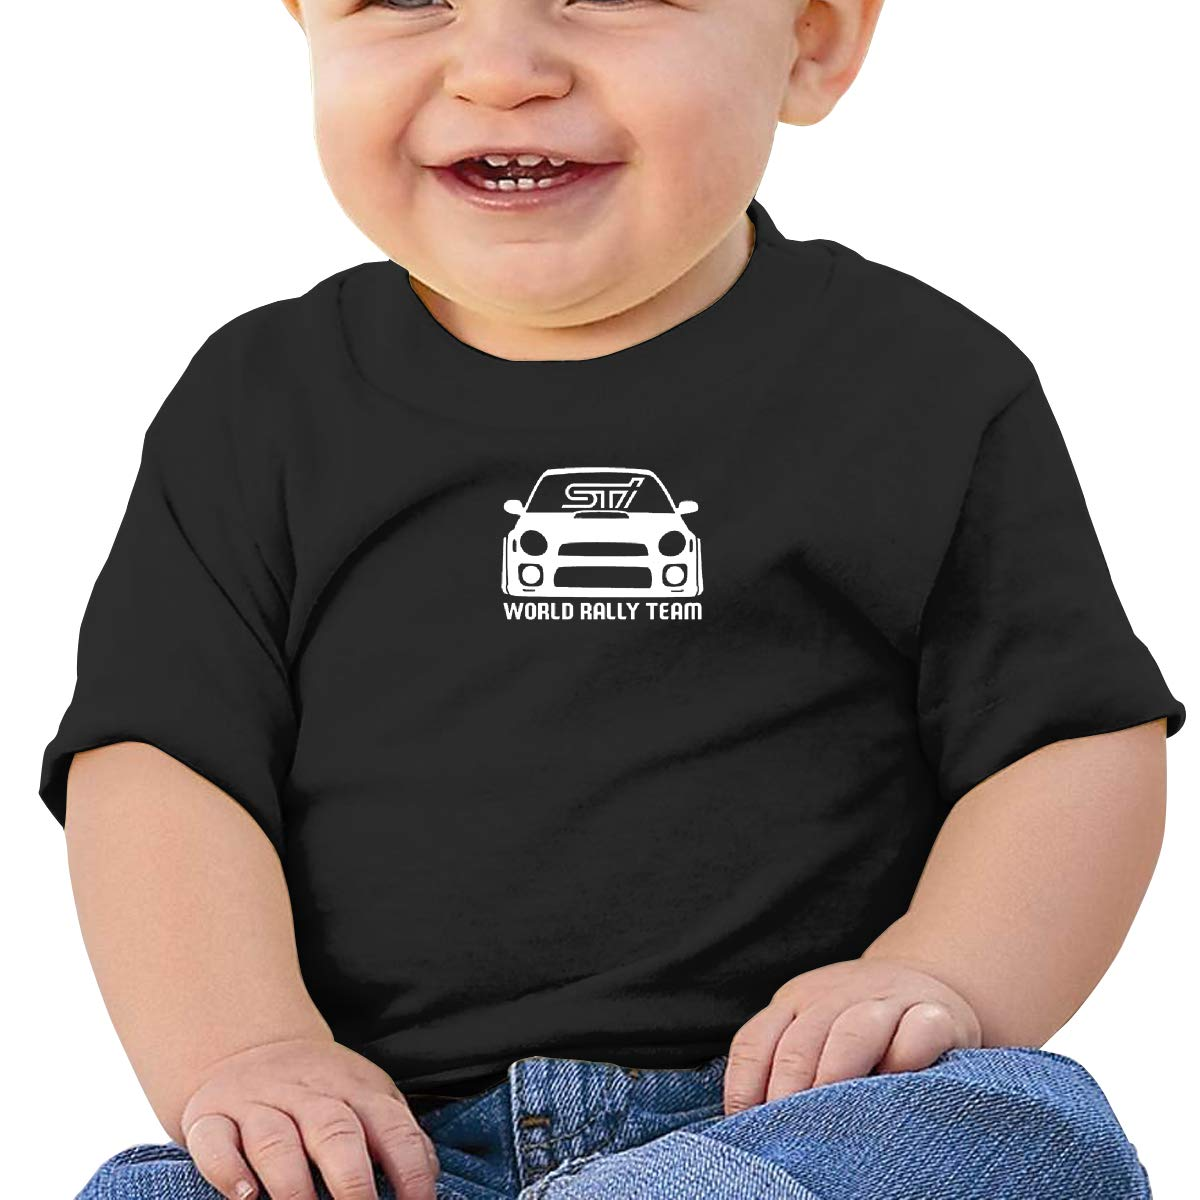 JVNSS World Rally Team Racing Baby T-Shirt Kids Cotton T Shirts Funny Tee Shirts for 6M-2T Baby